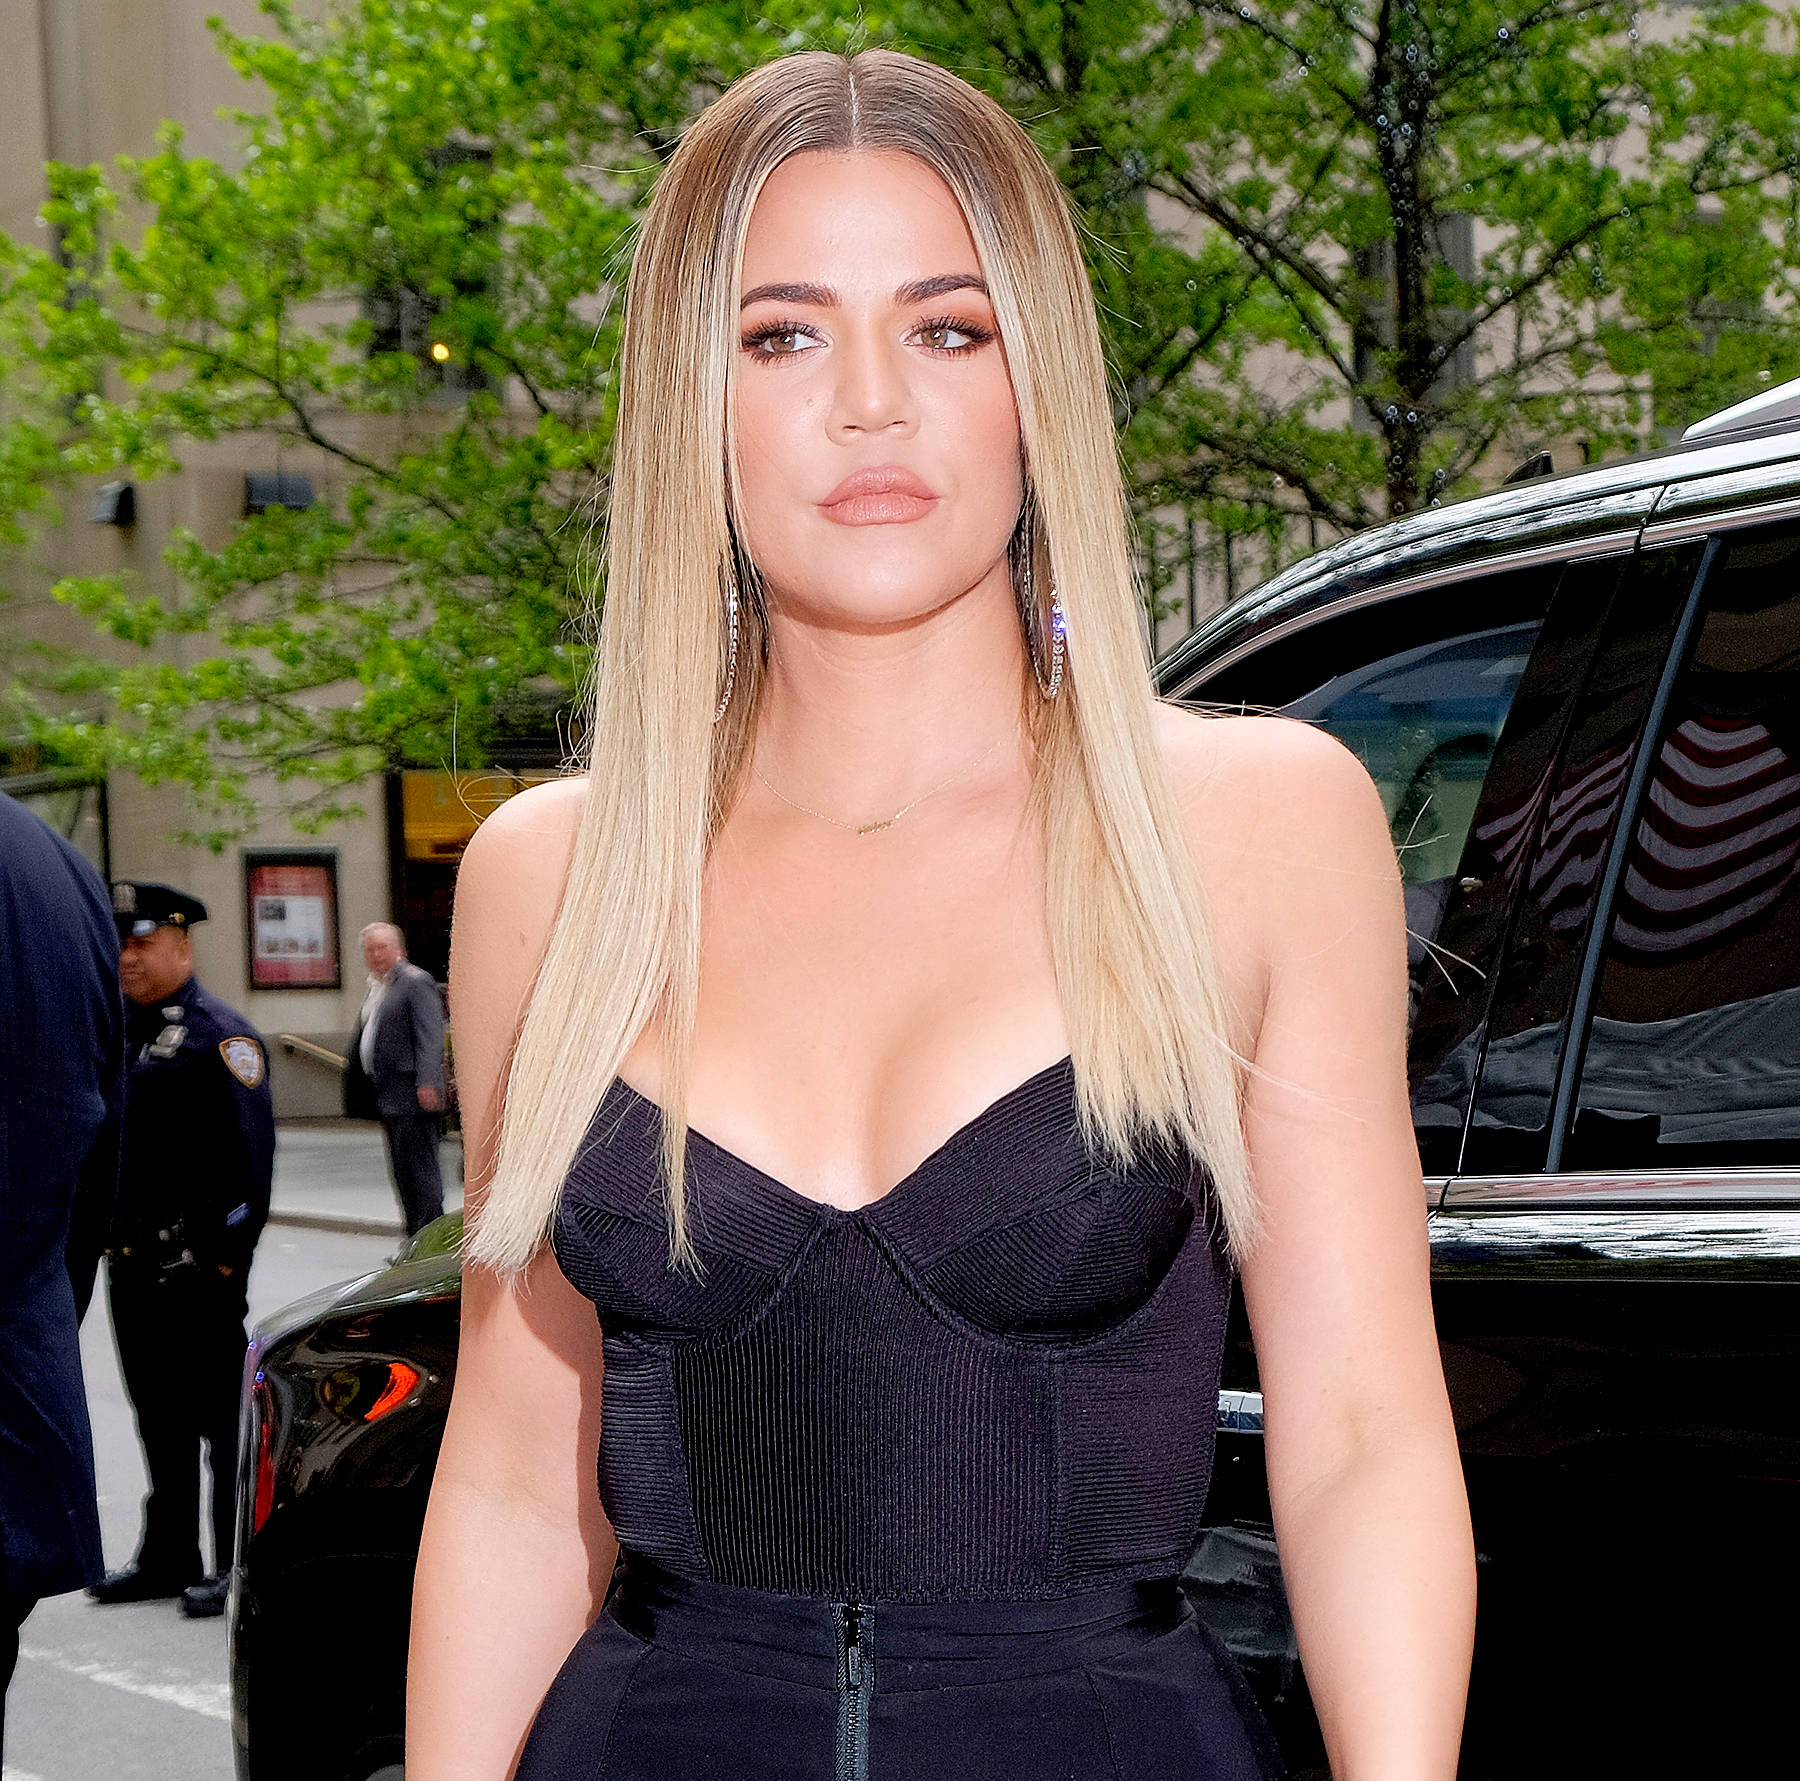 Celebrity Mom Khloe Kardashian parenting advice